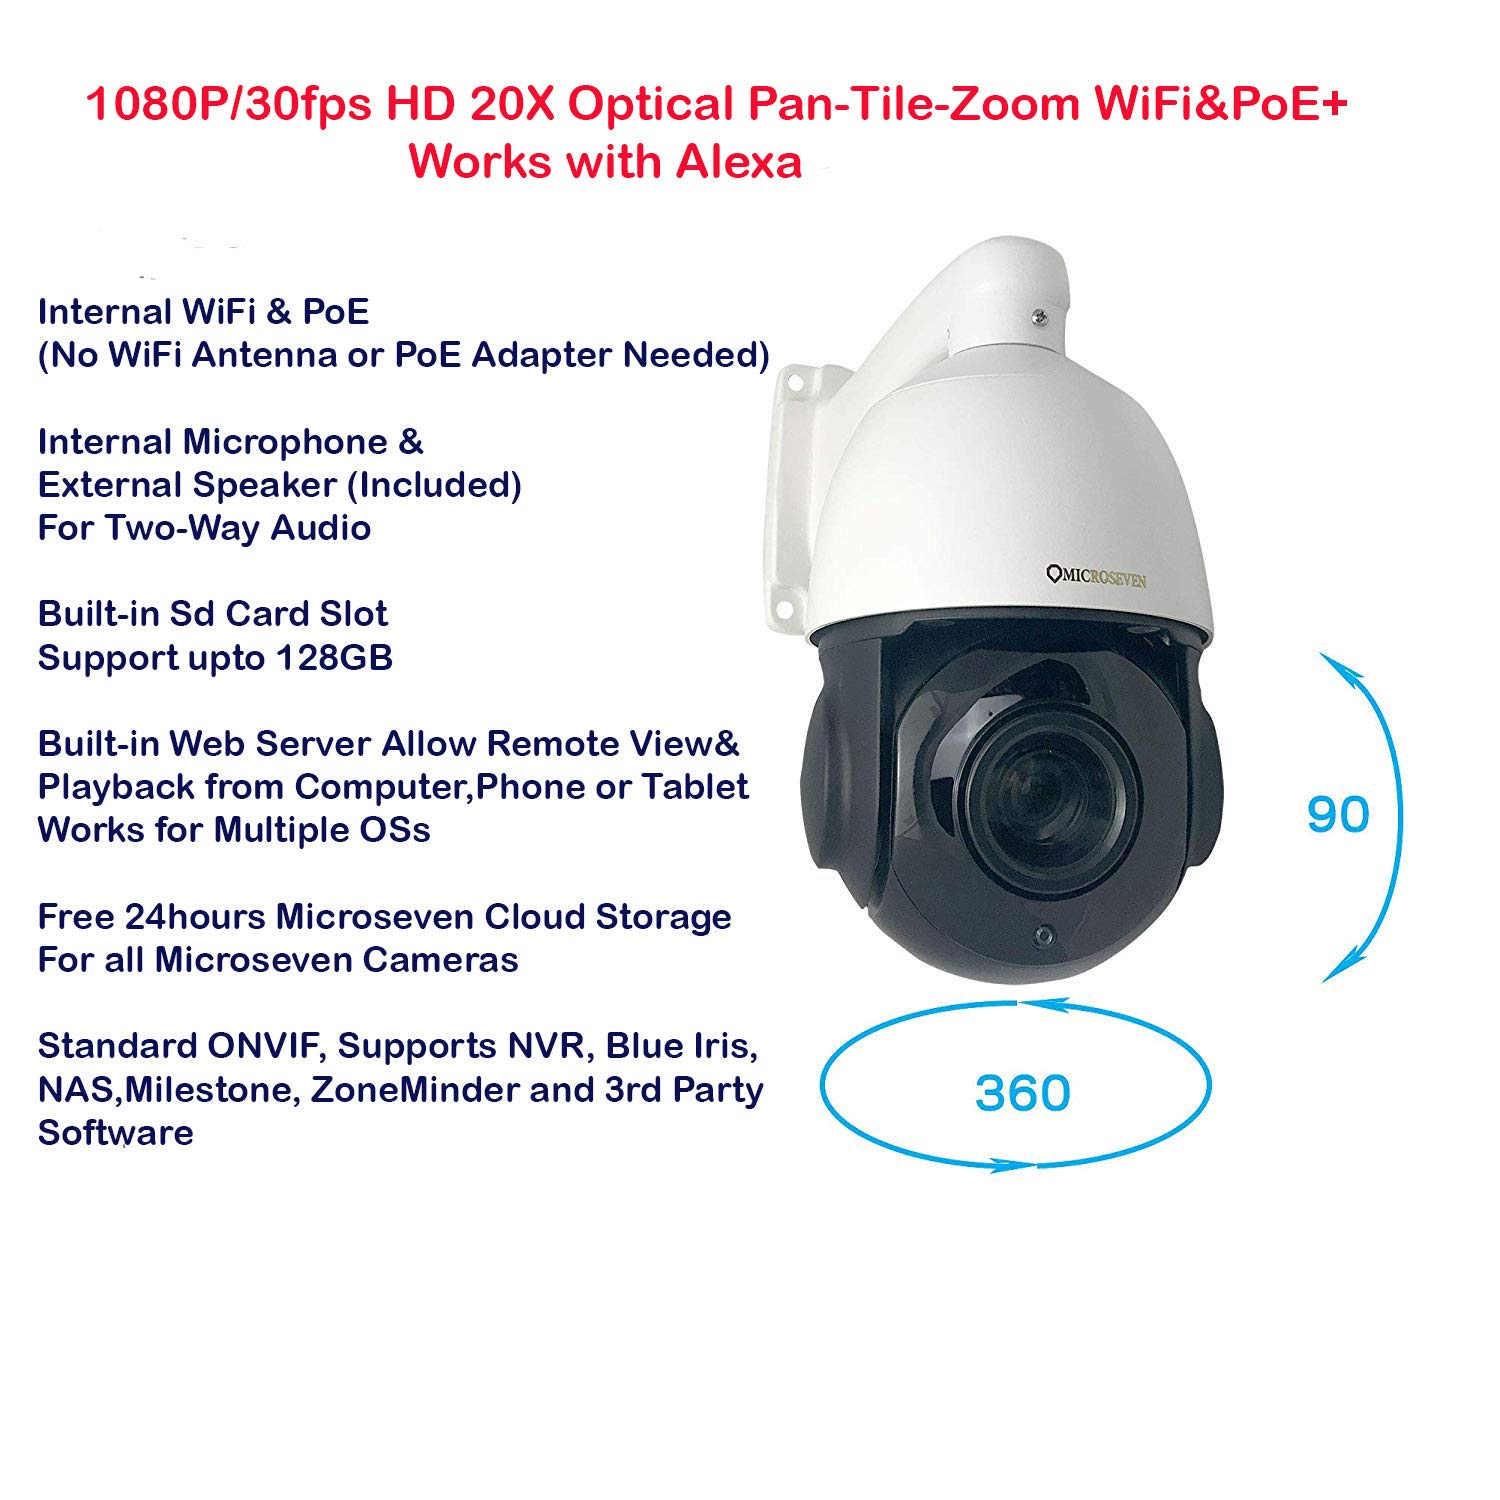 Microseven Open Source 1080P / 30fps HD 20X Optical Zoom Pan Tilt Speed Dome IP Camera Built-in WiFi &POE+ Outdoor PTZ Camera, Works with Alexa, Night Vision,Sony Starvis CMOS,IP66 Weatherproof, Built-in 128GB SDcard Slot, Two-Way Audio with Build-in Microphone & External Speaker (Included), Auto Cruise,ONVIF, Web GUI & Apps, VMS (Video Management System), Free 24Hr Cloud Storage